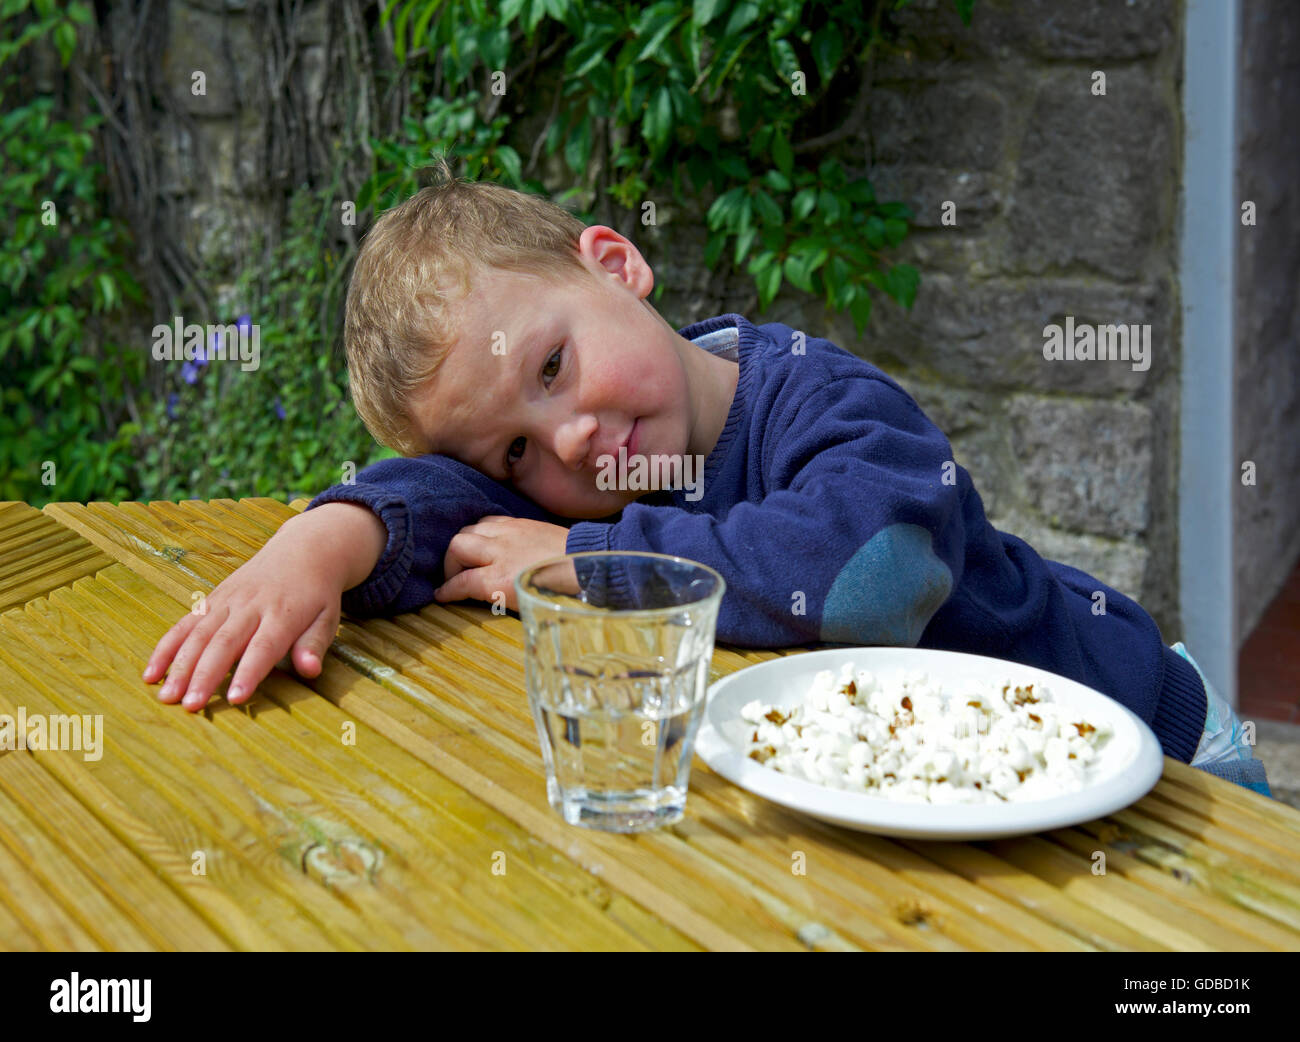 two year old boy sitting at a table - Stock Image